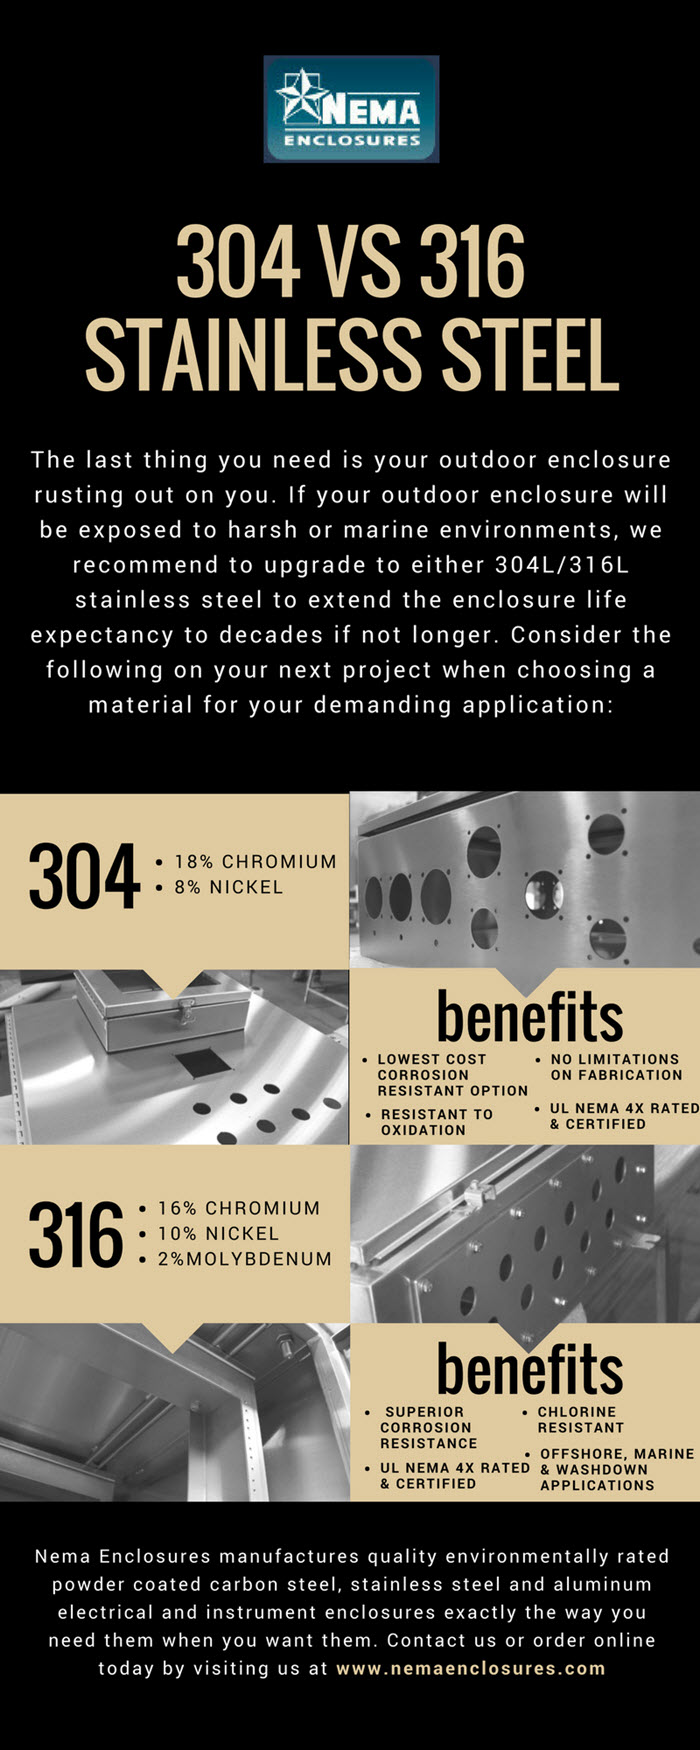 304 vs 316 stainless steel infographic